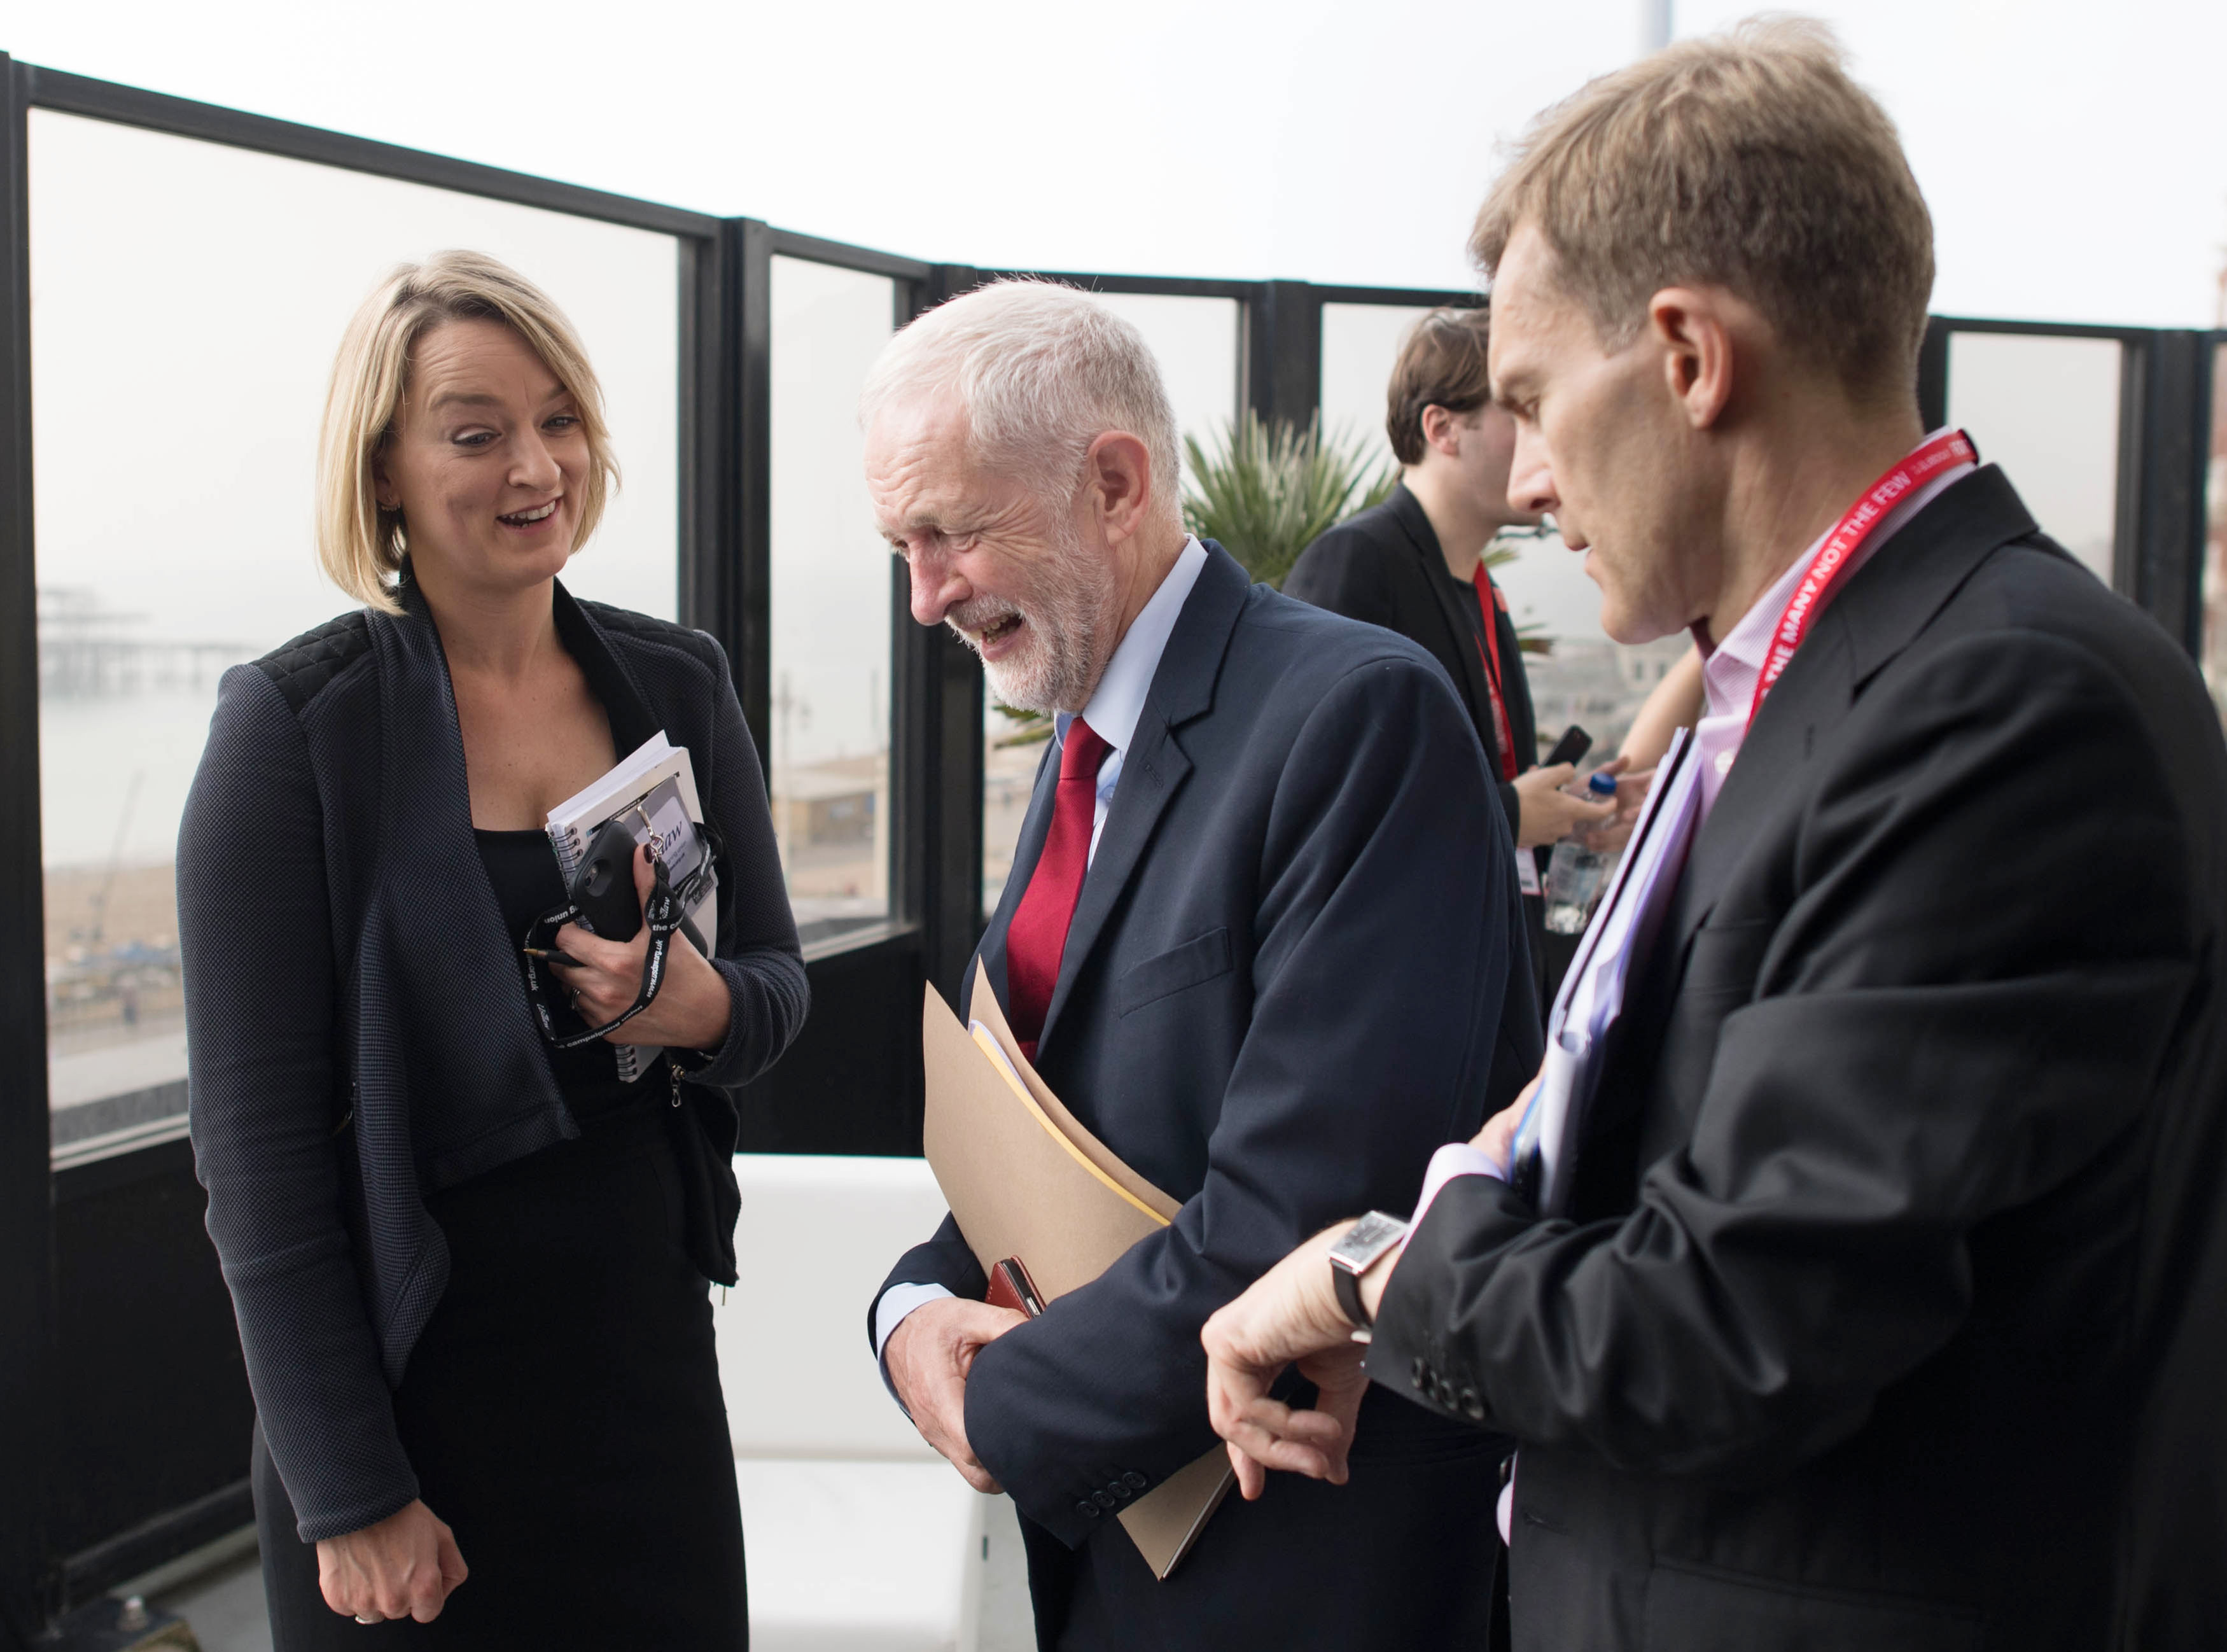 Labour Party leader Jeremy Corbyn (centre) talks with BBC political editor Laura Kuenssberg, whilst watched by advisor Seamus Milne, after an interview at the Labour Party annual conference, at the Brighton Centre, Brighton.